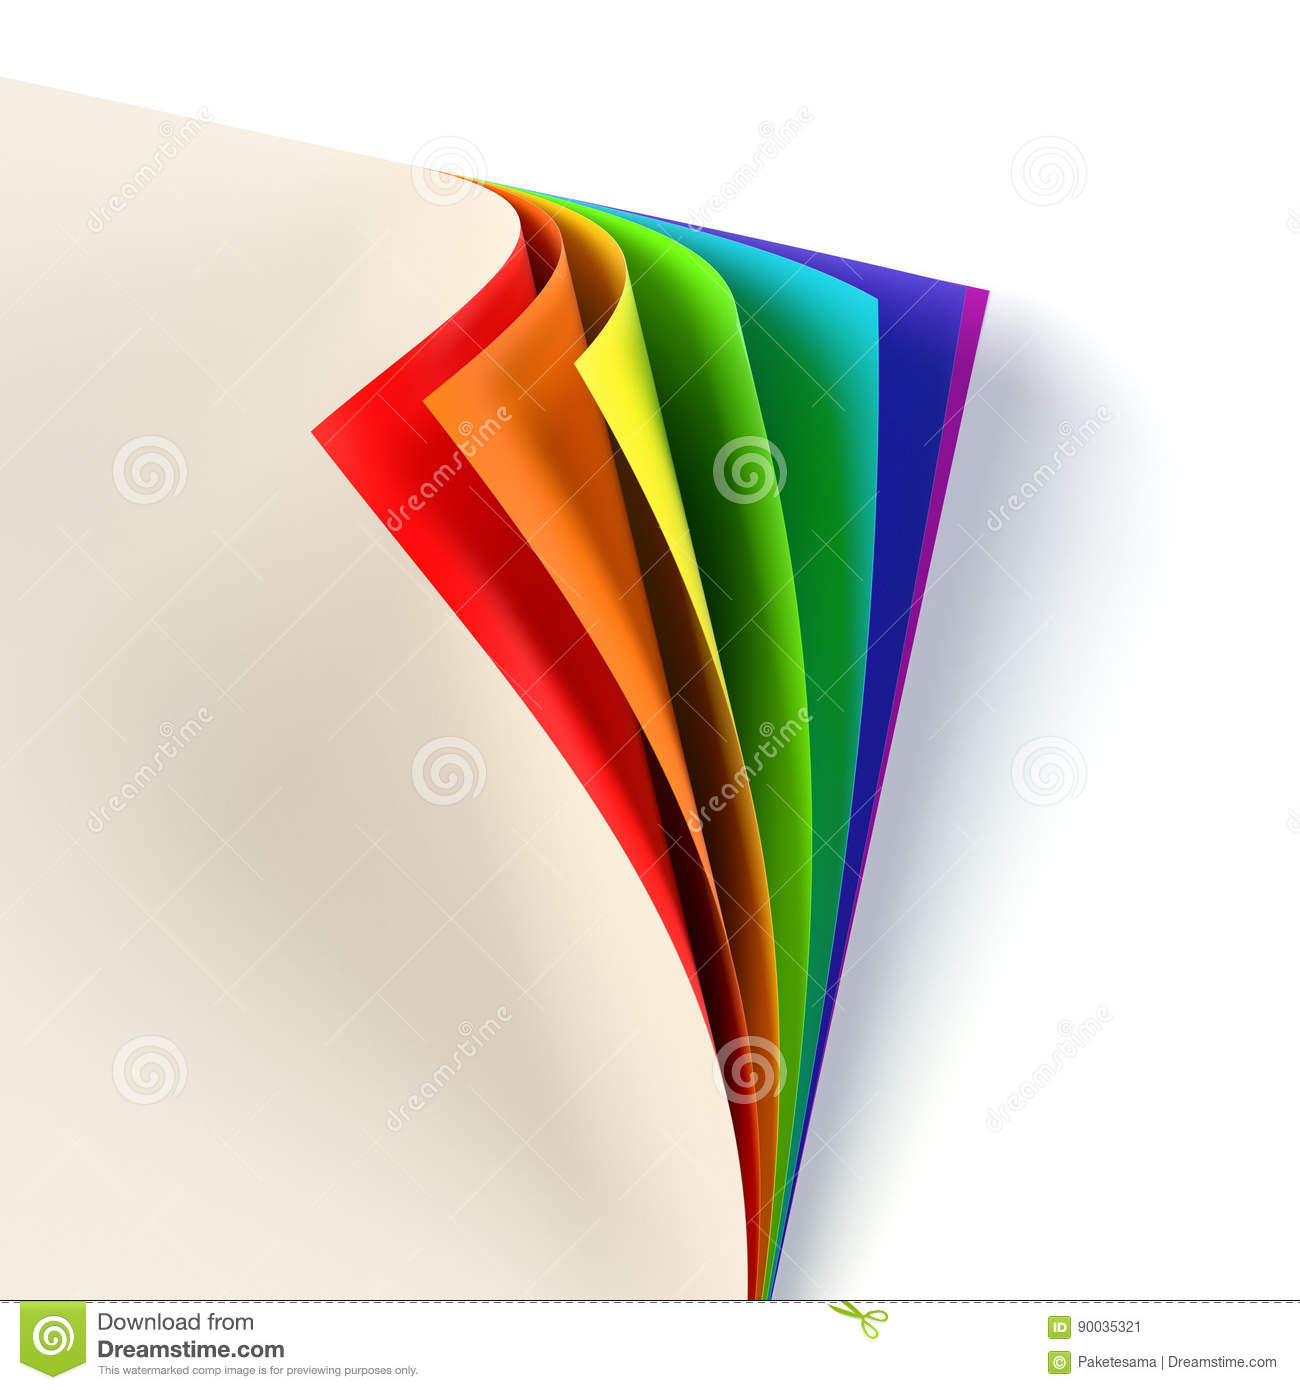 Blank Document Rainbow Colored Curled Corner Empty Template Mock Up Business Corporate Identity Advertisement Poster With Turning